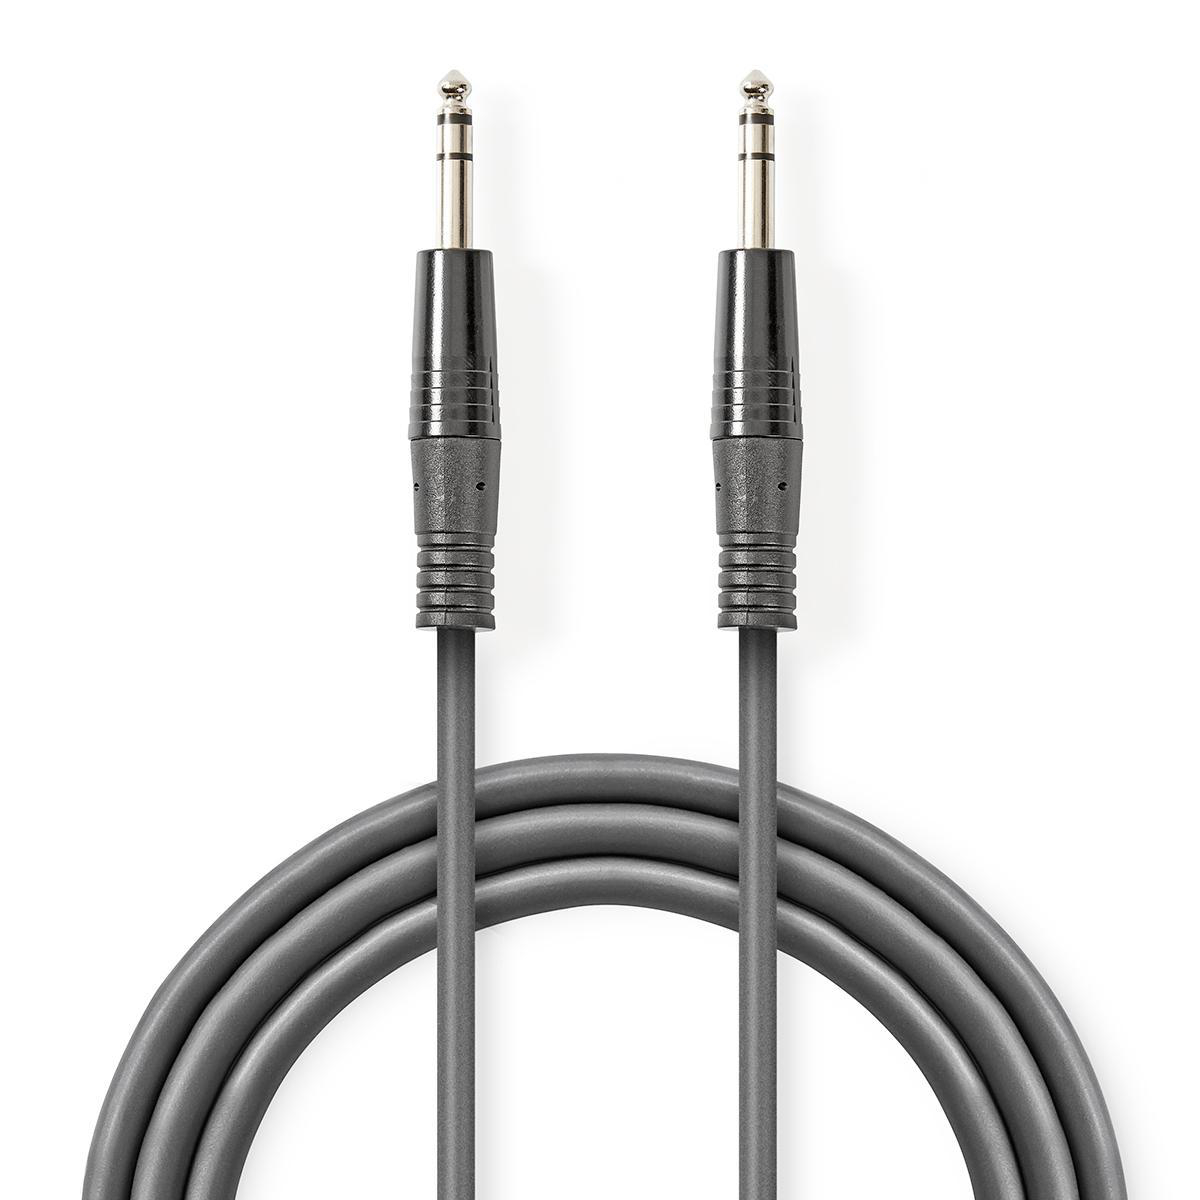 Stereo Audio Cable 6.35 mm Male - 6.35 mm Male 5.0 m Dark Gray ND2635